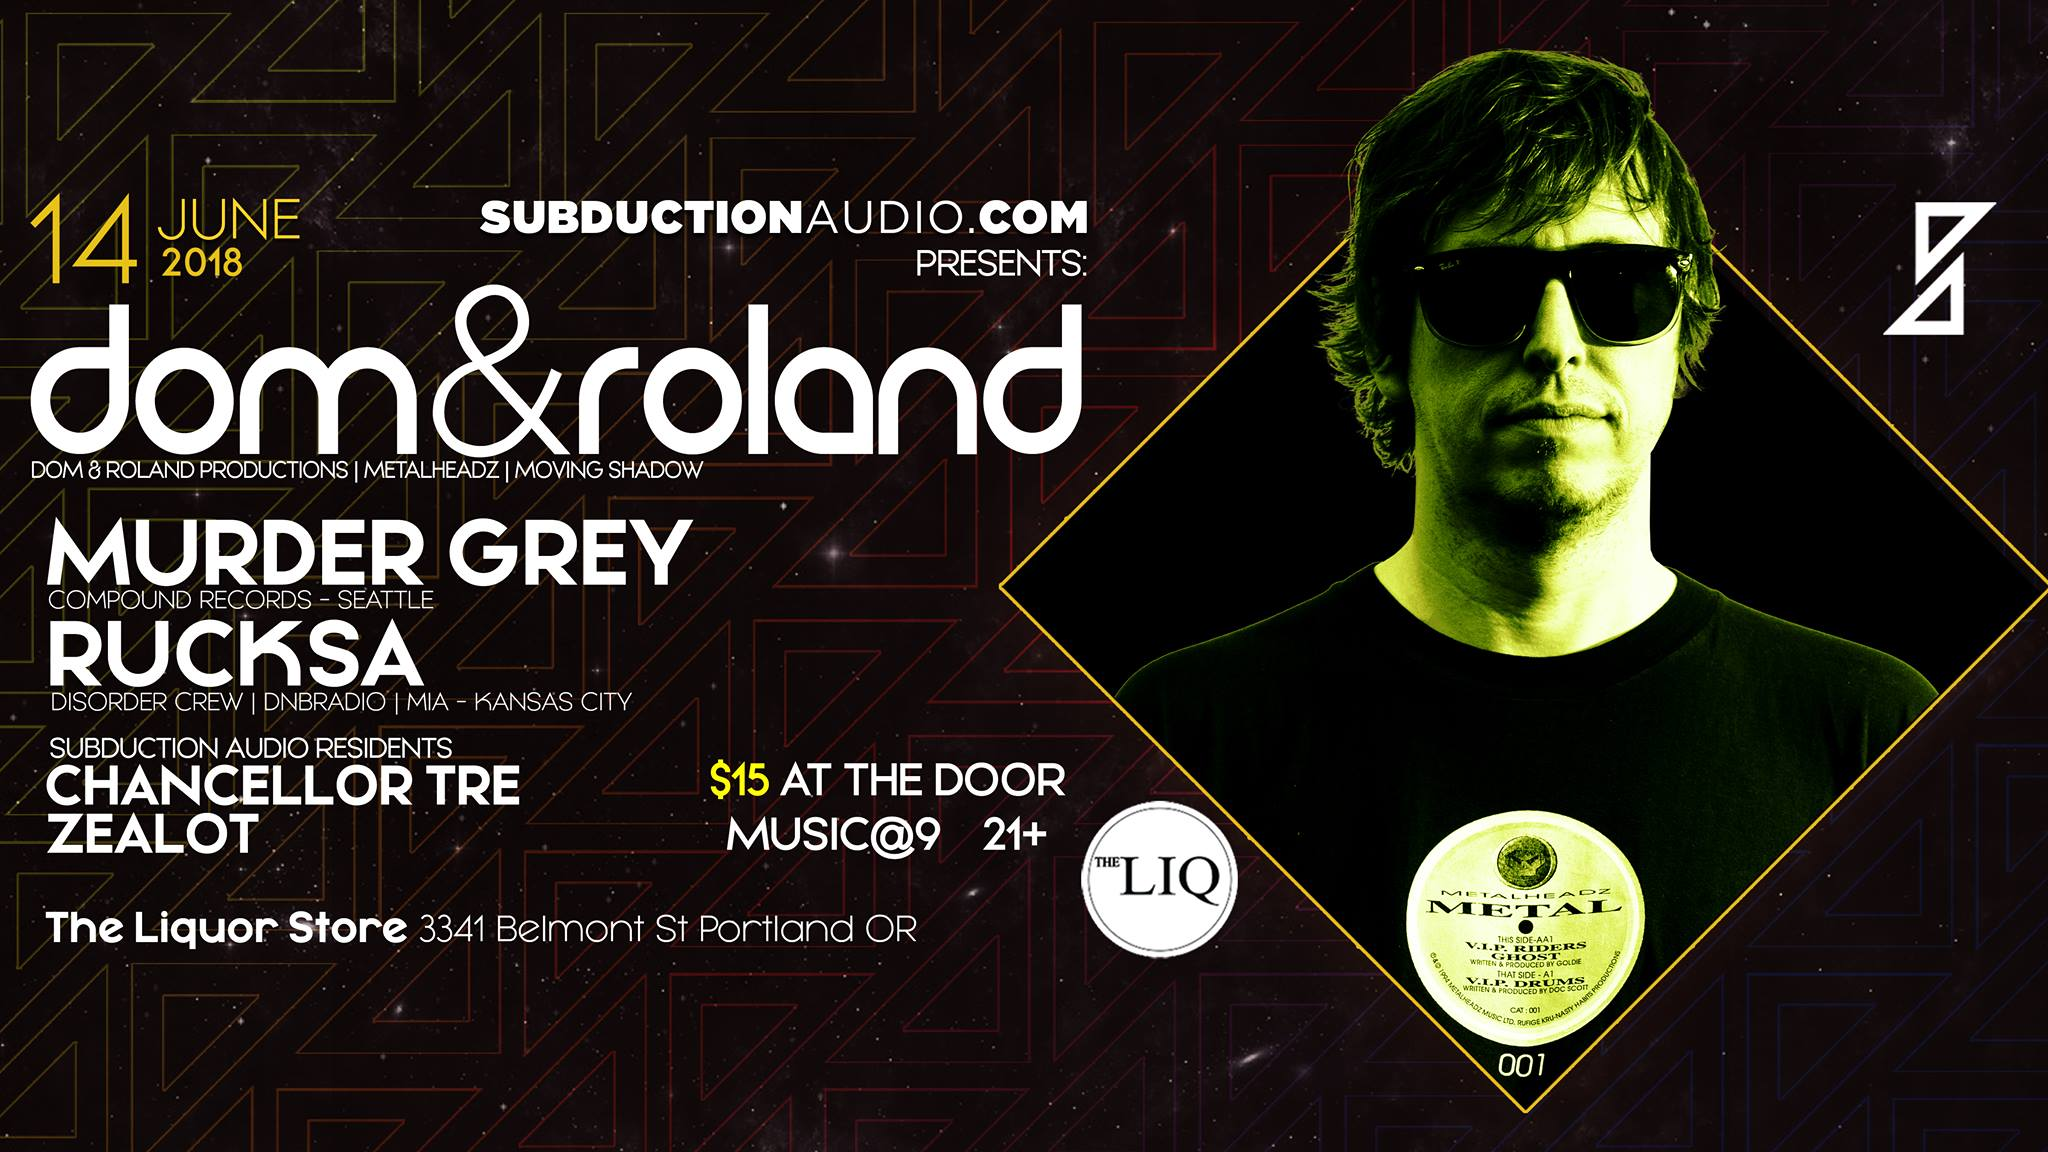 Subduction Audio Presents: Dom and Roland